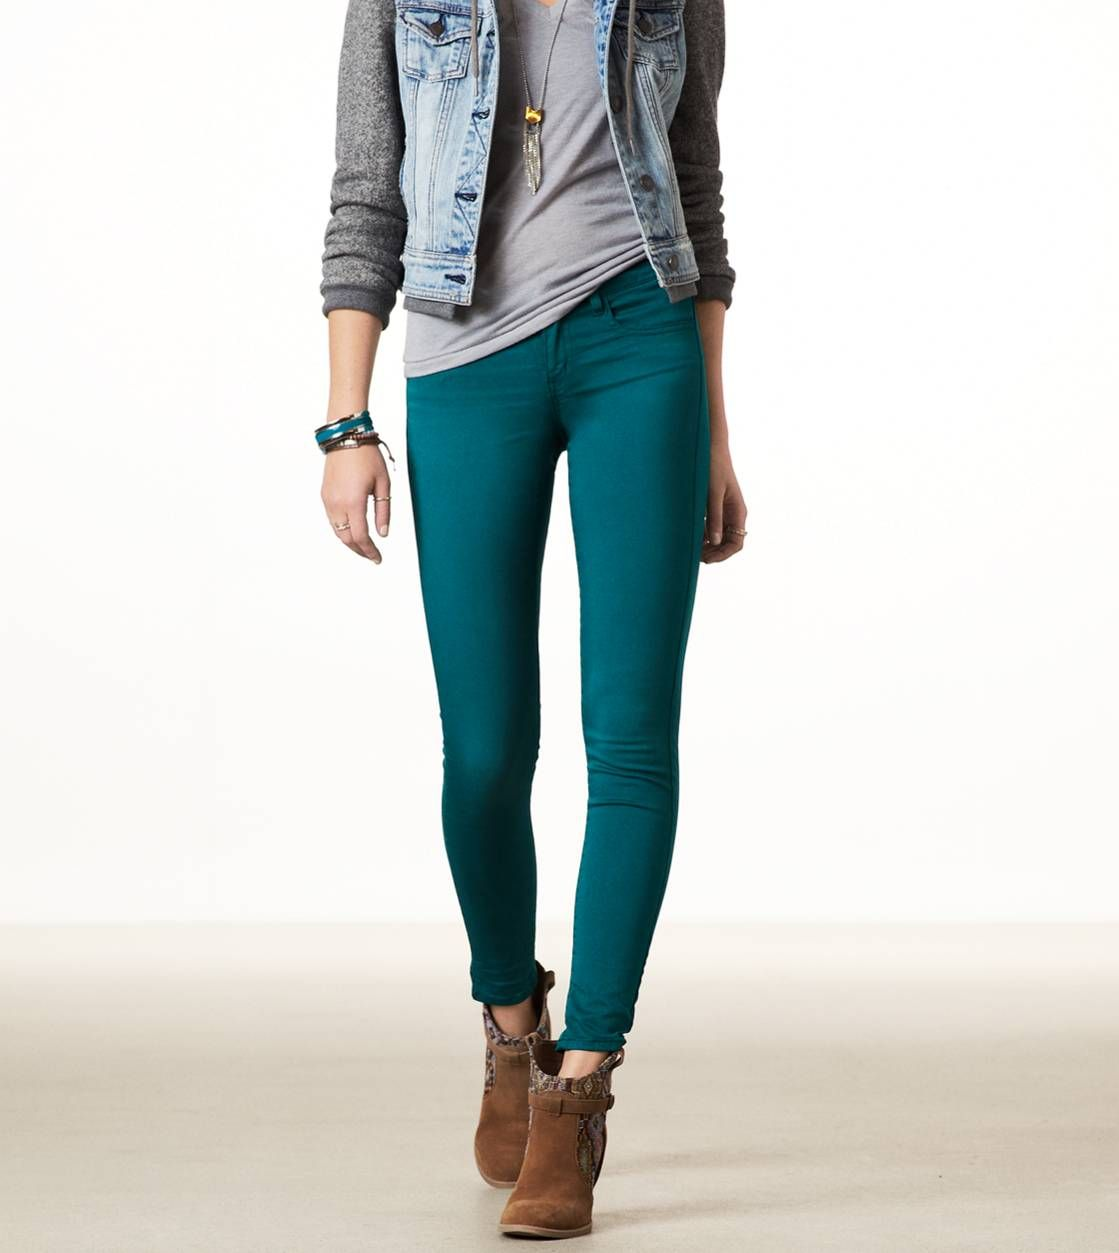 Teal, sateen jeggingsamerican eagle | Teal leggings outfit, Teal jeans outfit, Jeggings